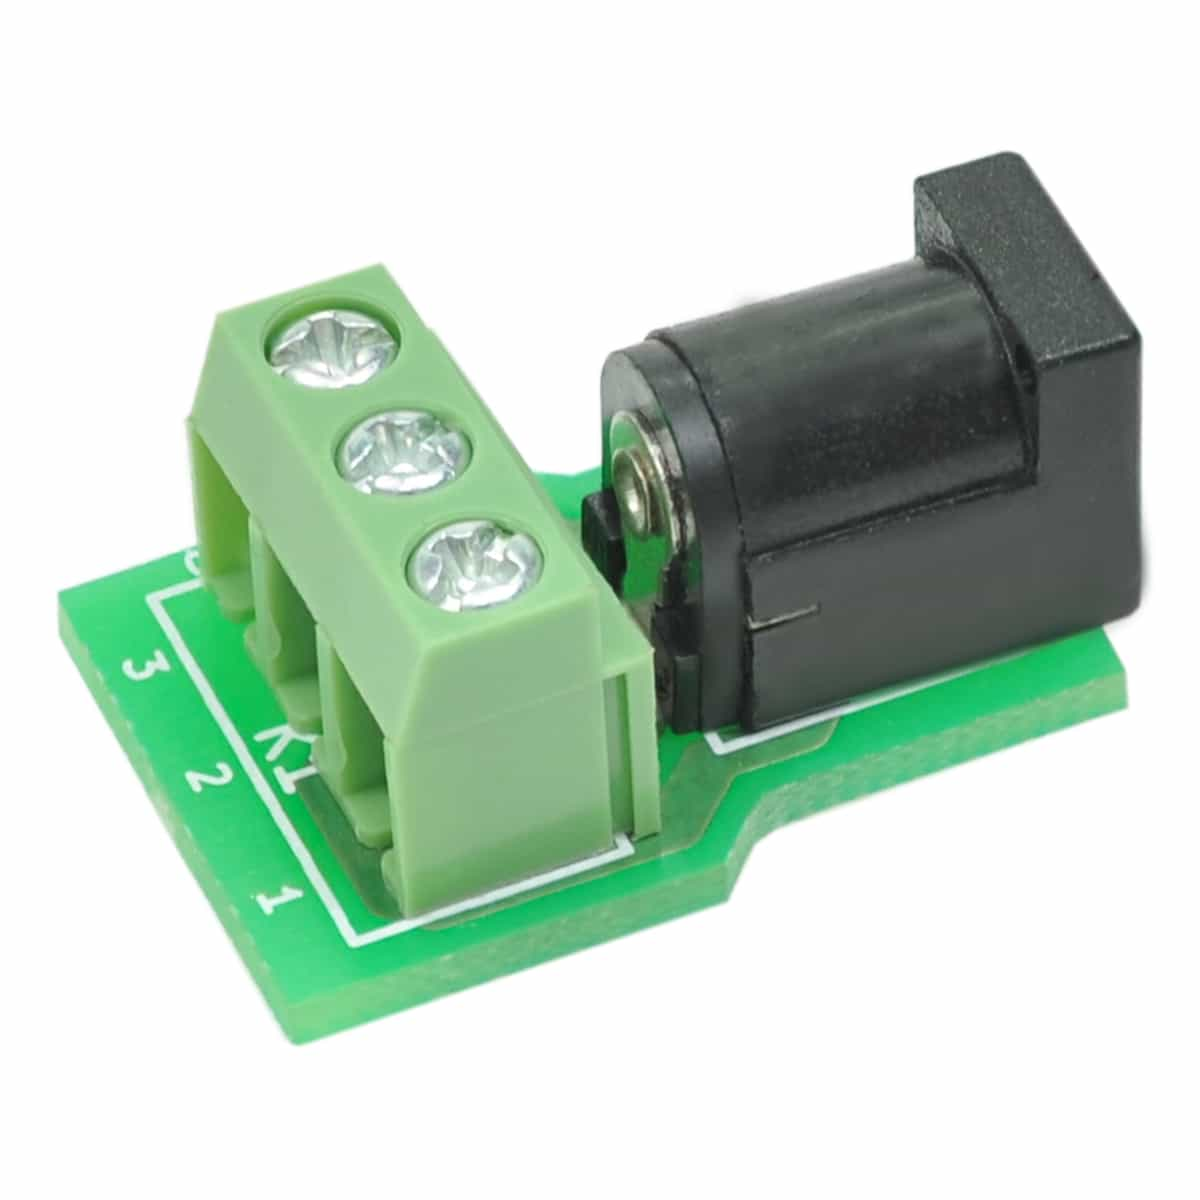 Dc Barrel Jack Adapter For Power Numato Lab Poi Ethernet Wall Wiring